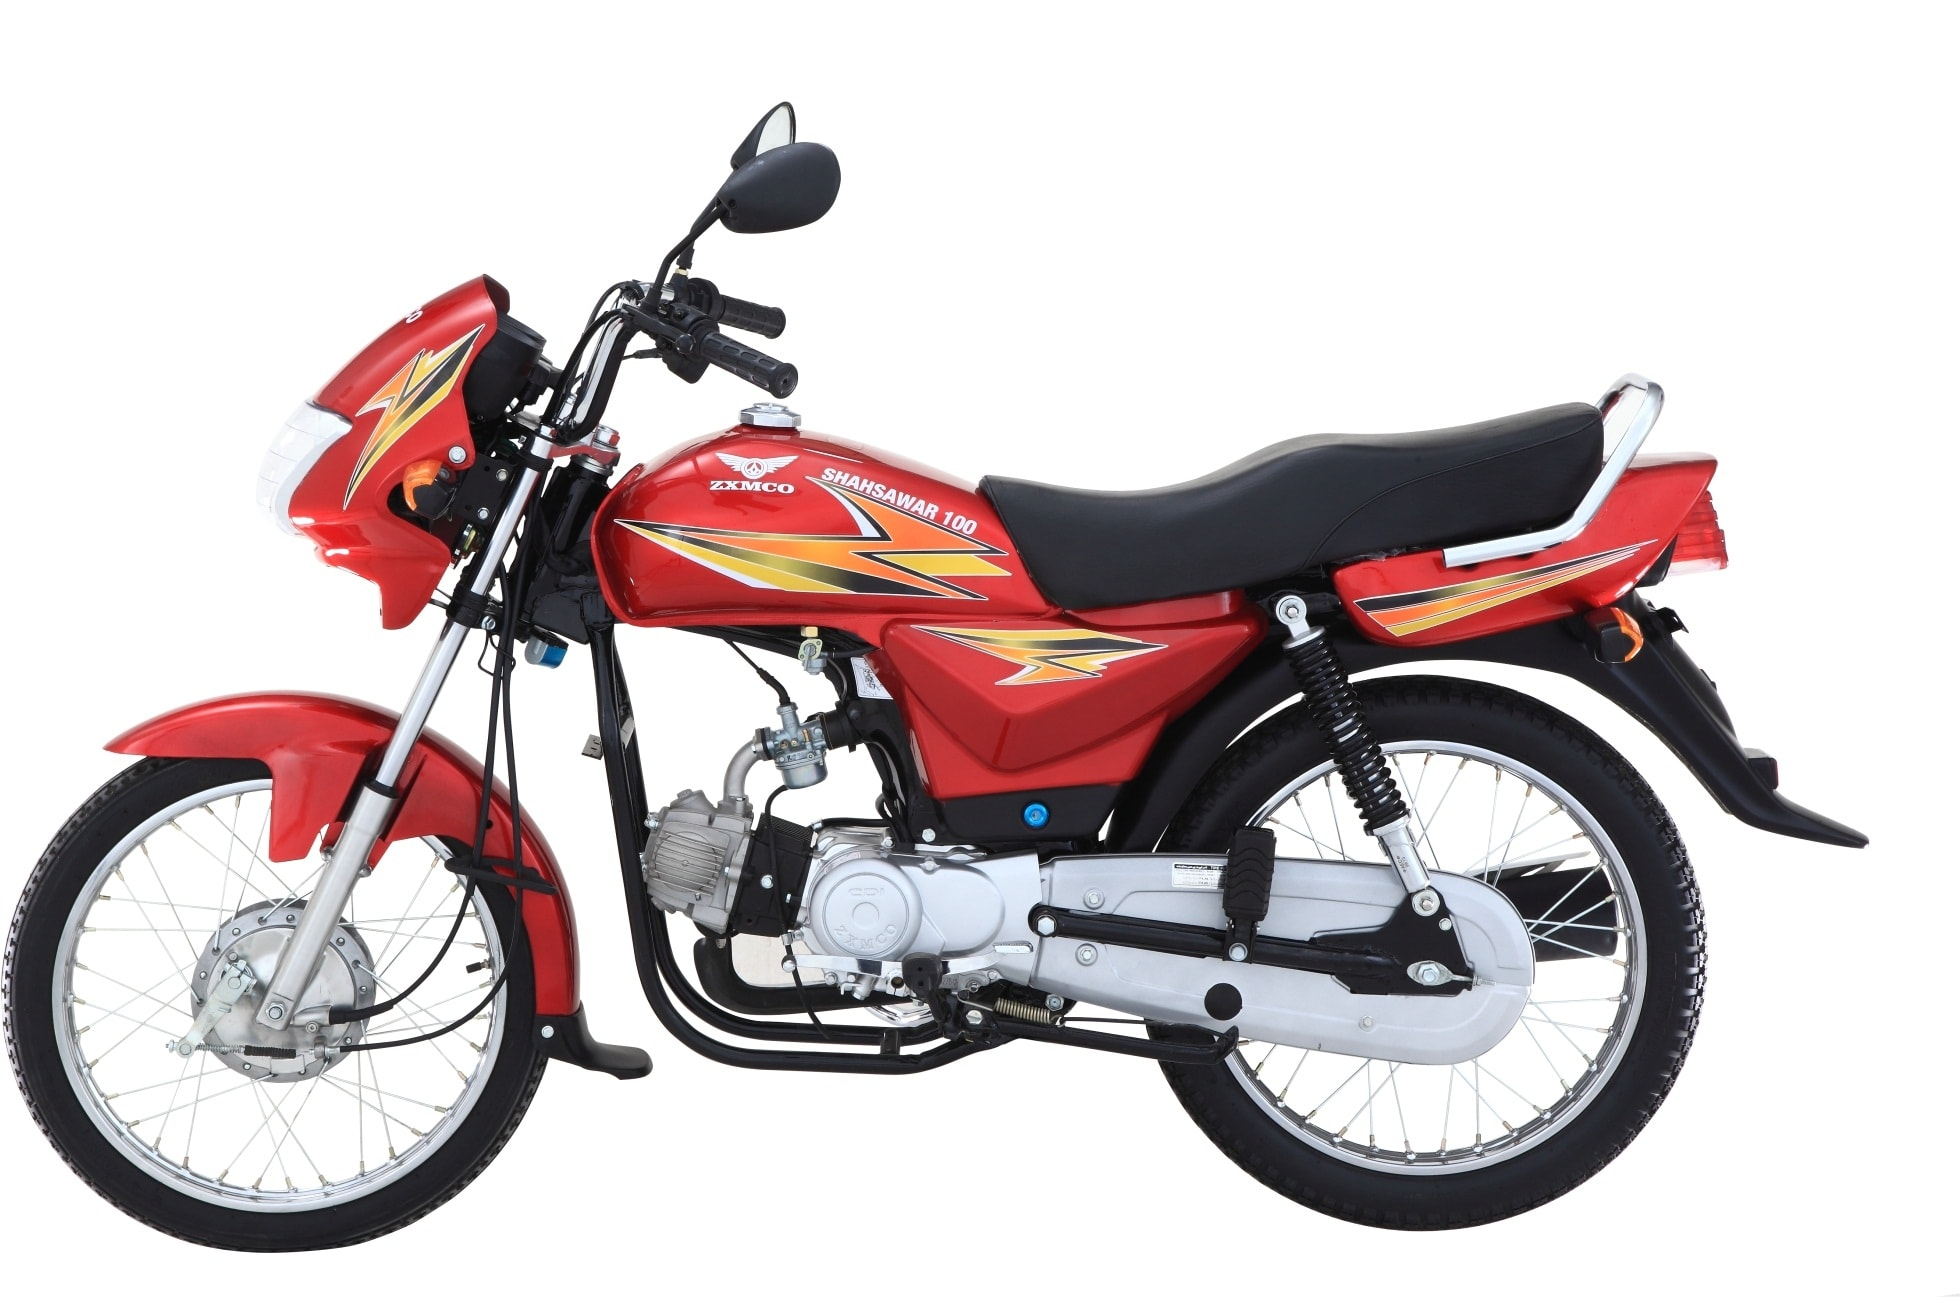 Zxmco ZX 100 Shahsawar 2019 Specs and Overiew | ebike.pk